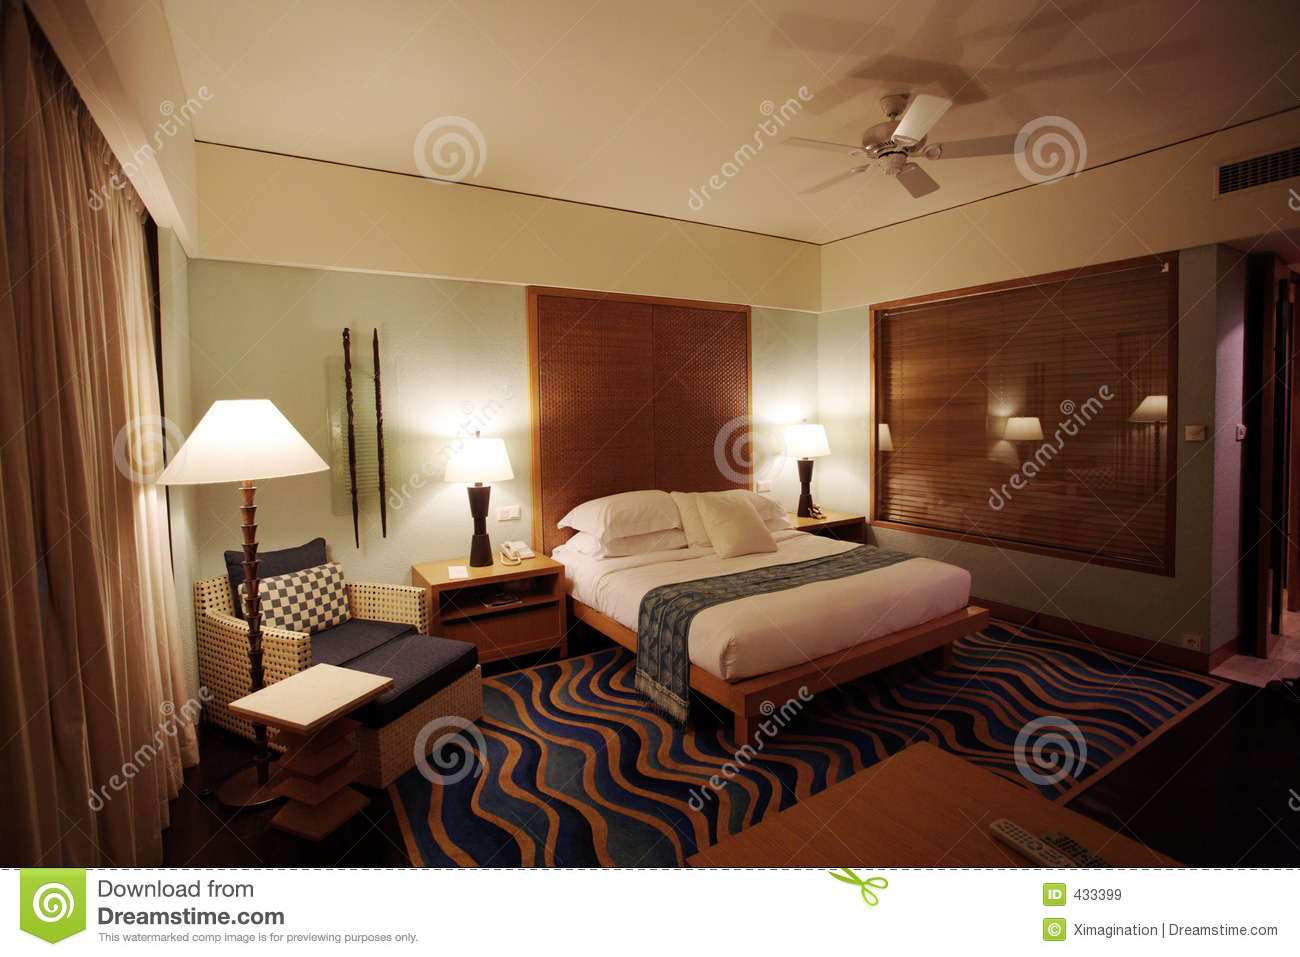 Five star hotel bedroom royalty free stock images image for 5 star bedroom designs